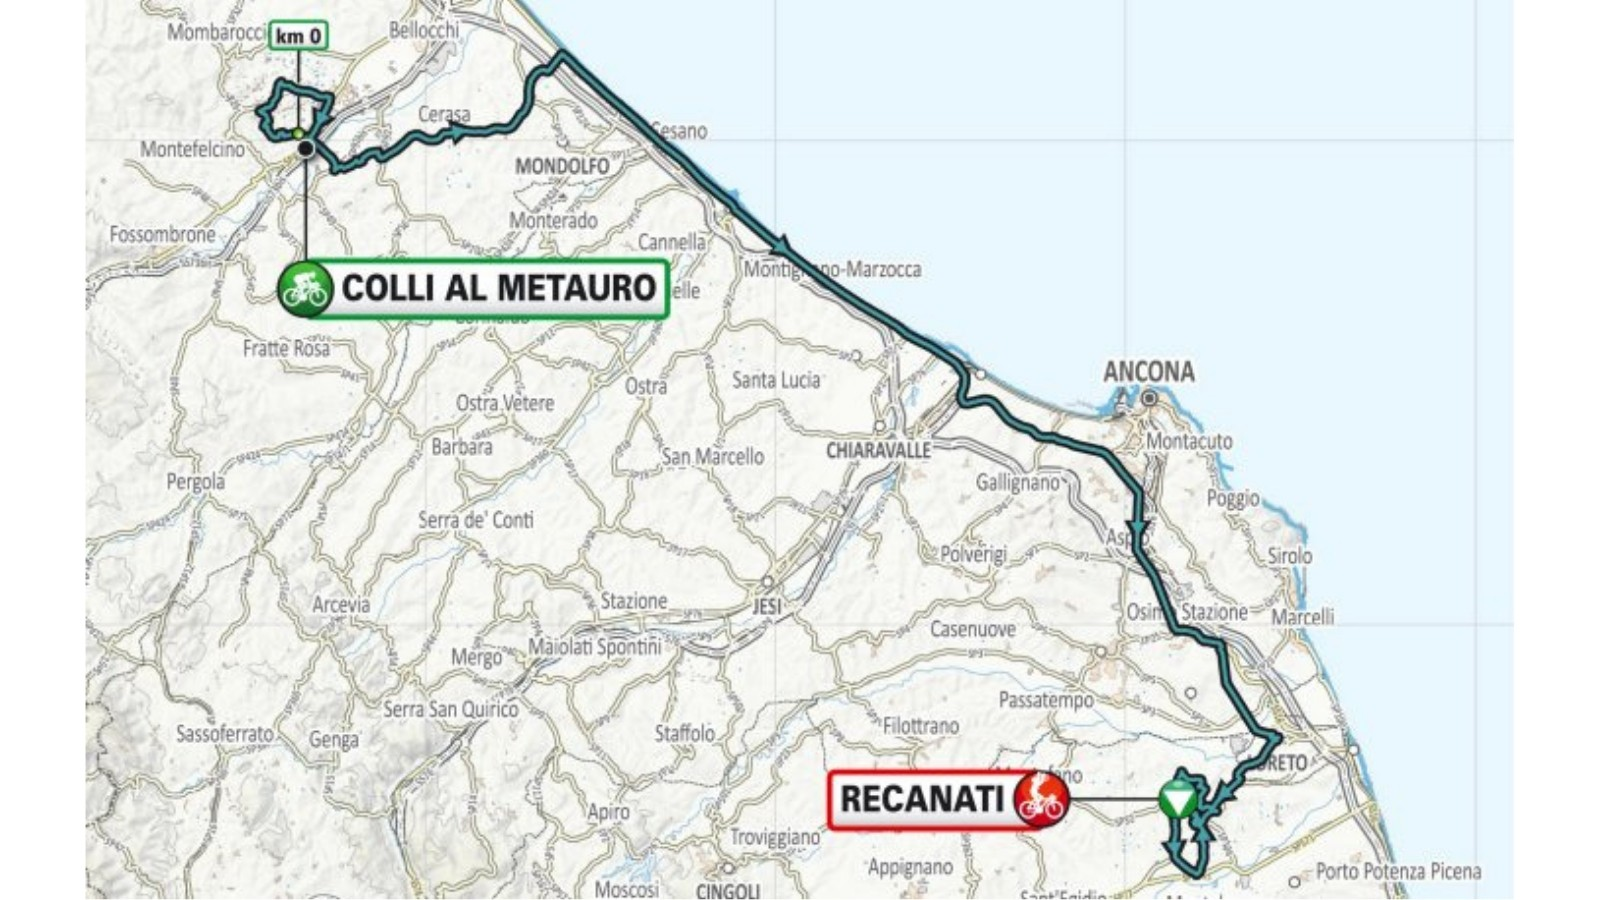 Stage 5 is another hilly day, leading from Colli al Metauro to an uphill finish in Recanati